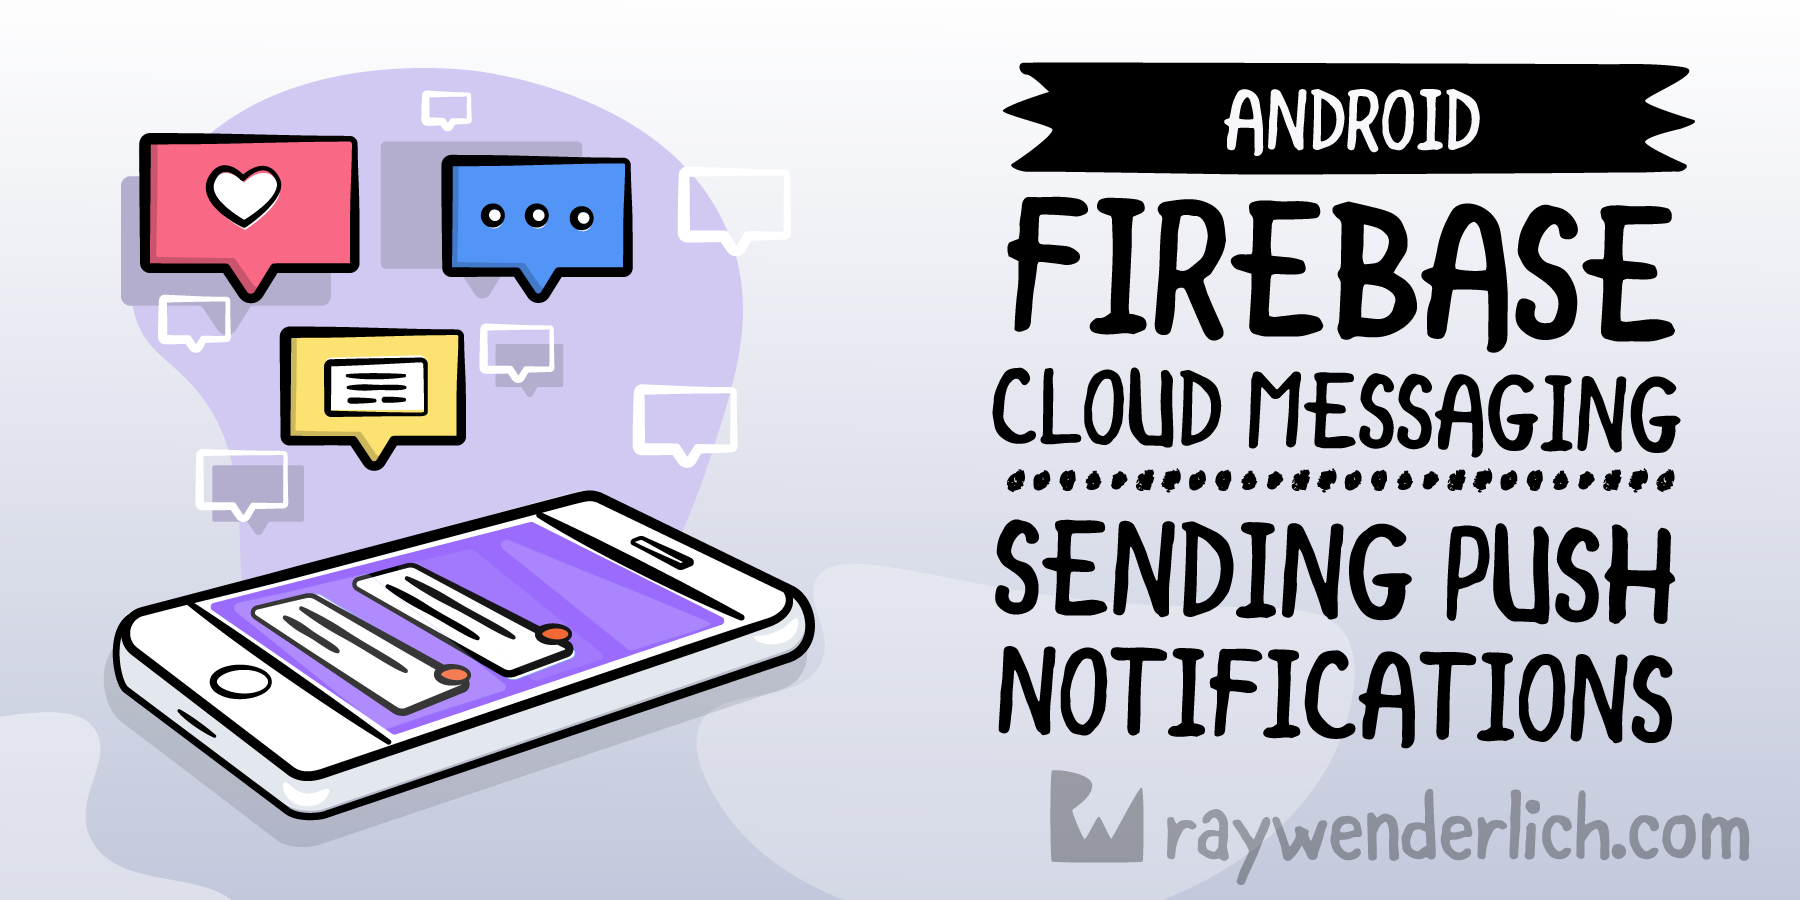 Firebase Cloud Messaging for Android: Sending Push Notifications [FREE] - RapidAPI